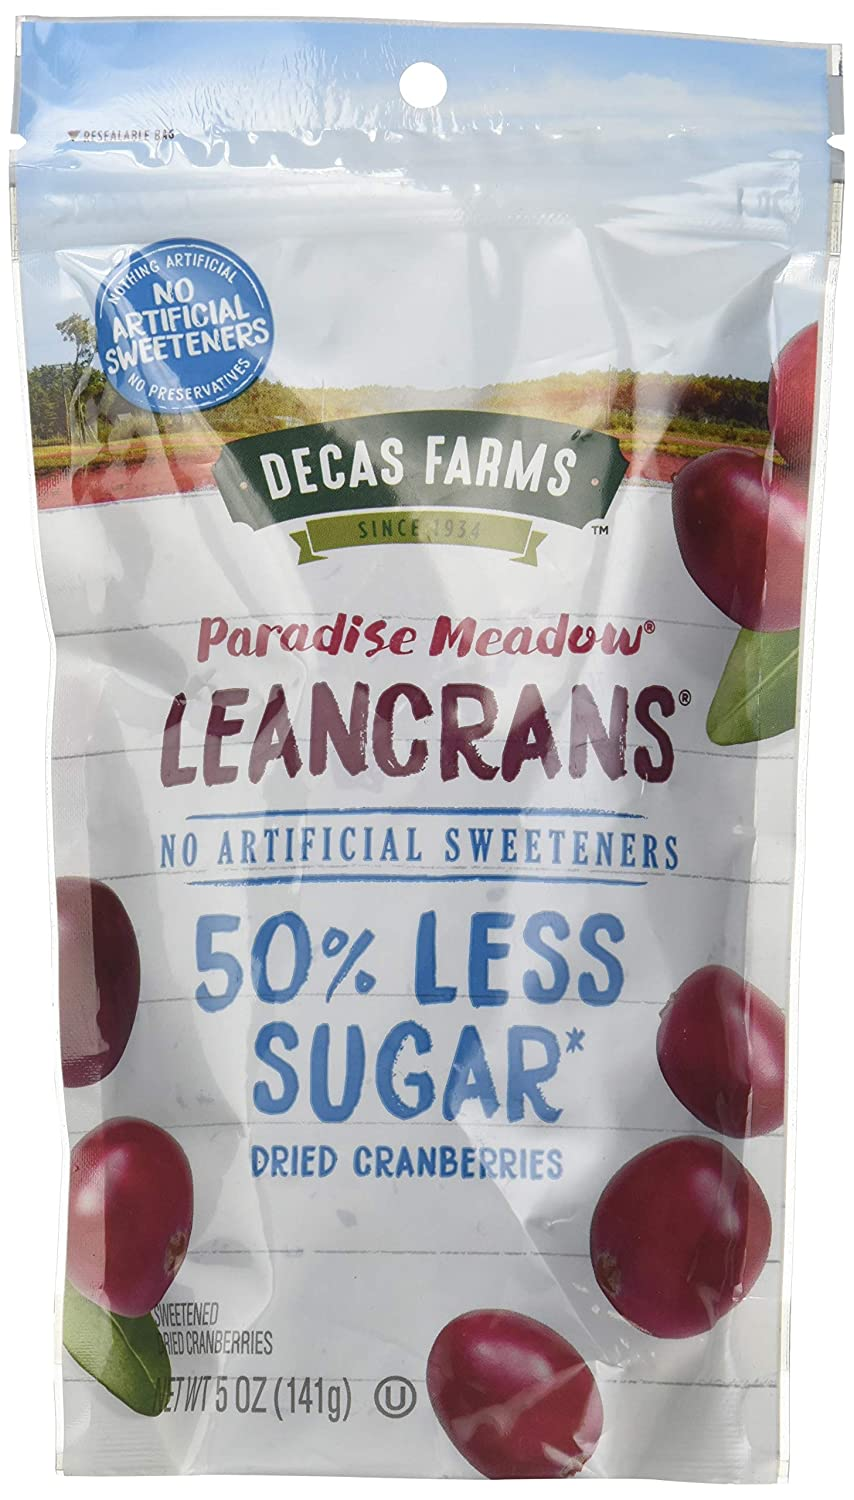 Decas Farms LeanCrans Reduced Sugar Dried Cranberries, 5 Ounce